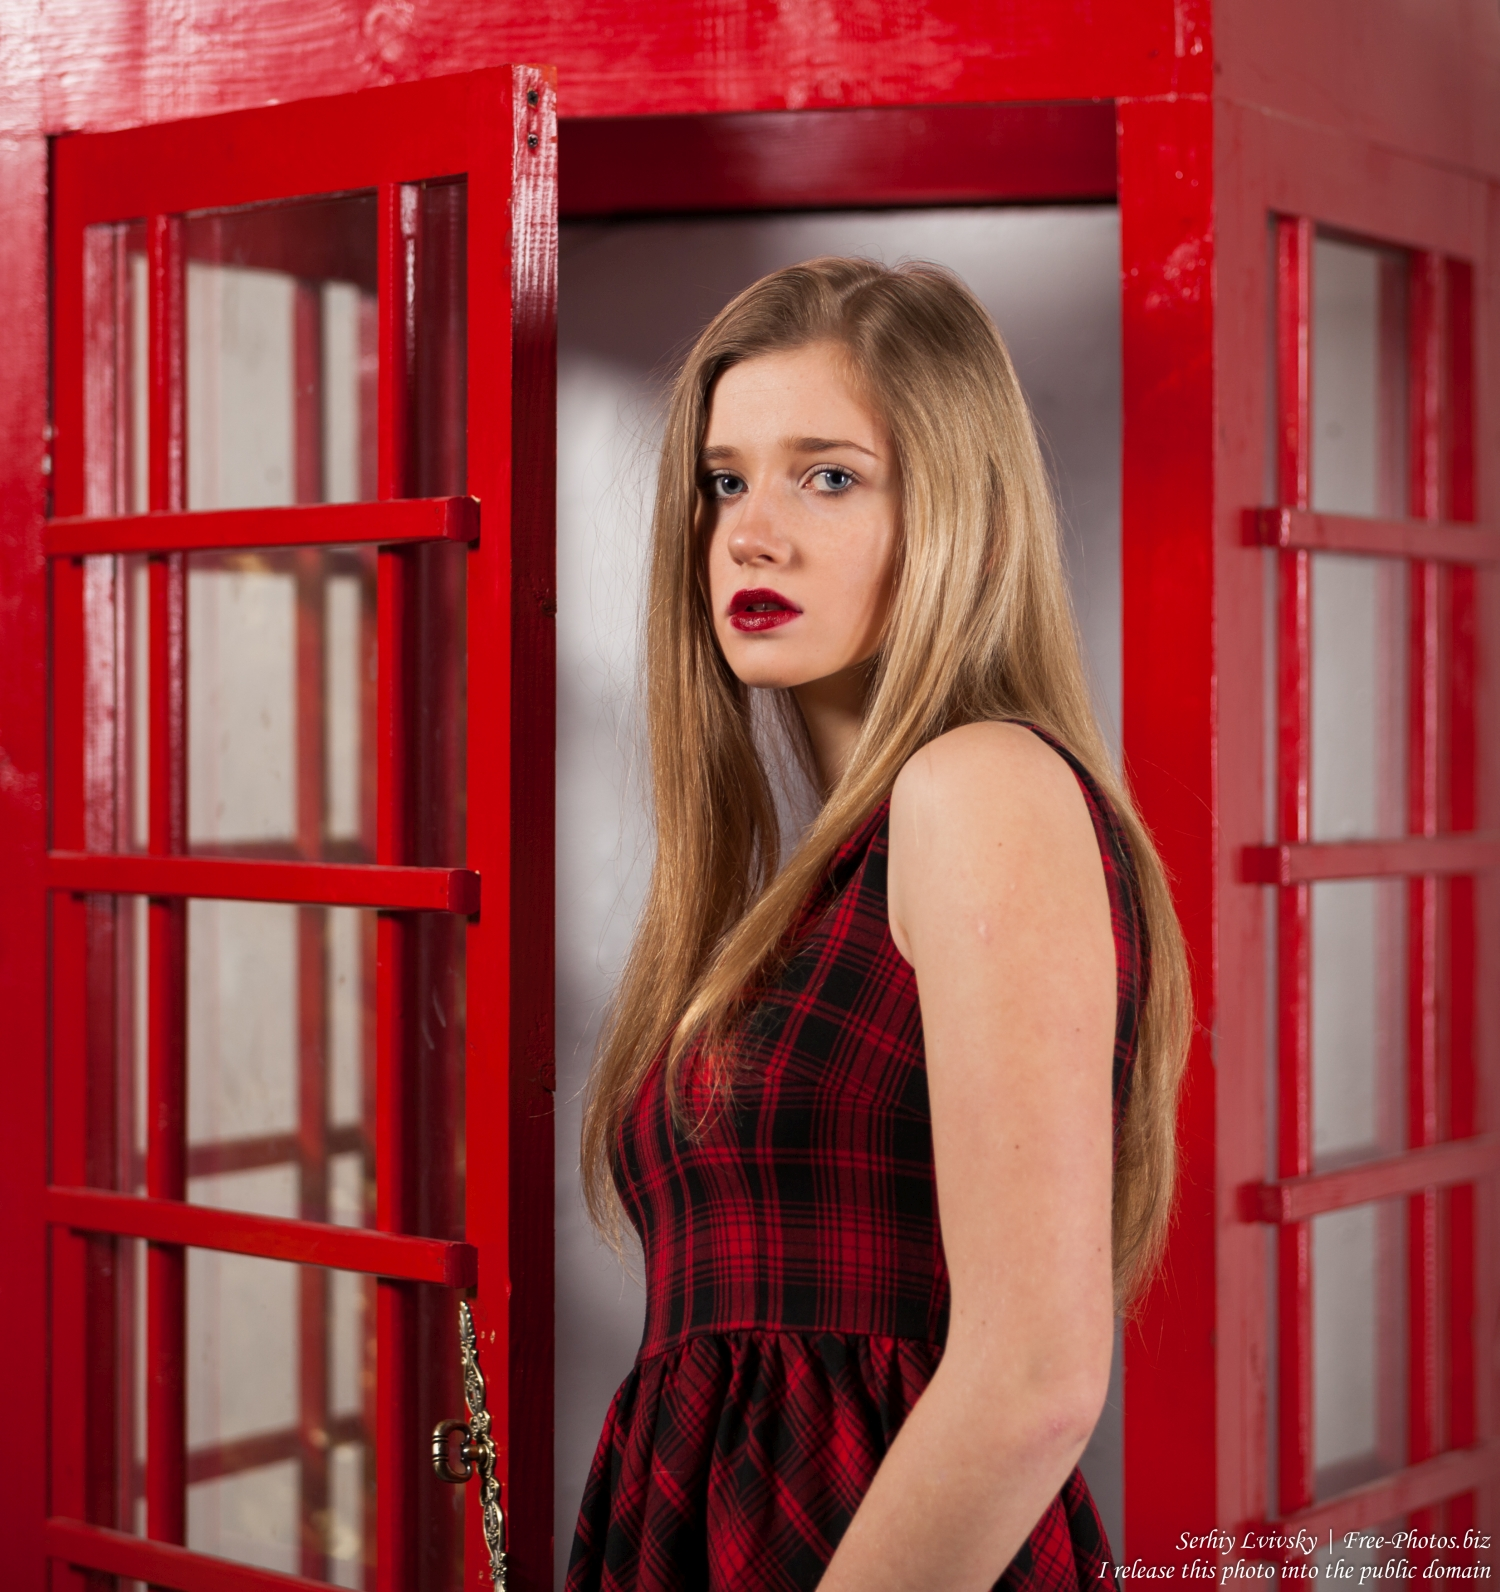 a_17-year-old_natural_blond_girl_photographed_by_serhiy_lvivsky_in_january_2016_18